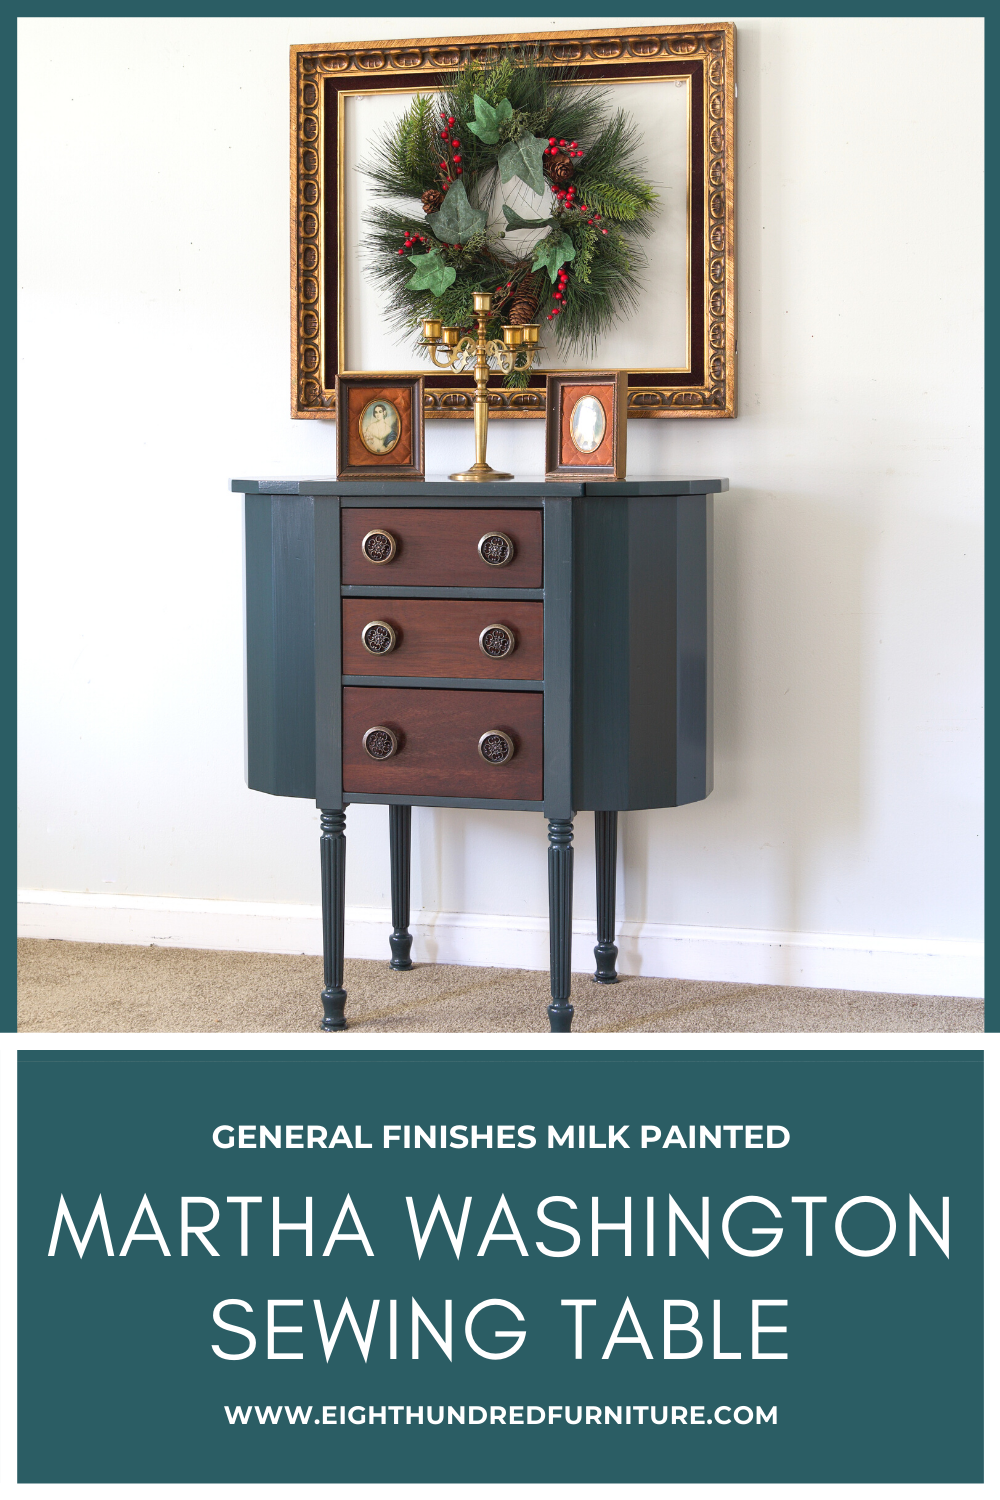 General Finishes Milk Paint, Martha Washington Sewing Table, Eight Hundred Furniture, Arm-R-Seal